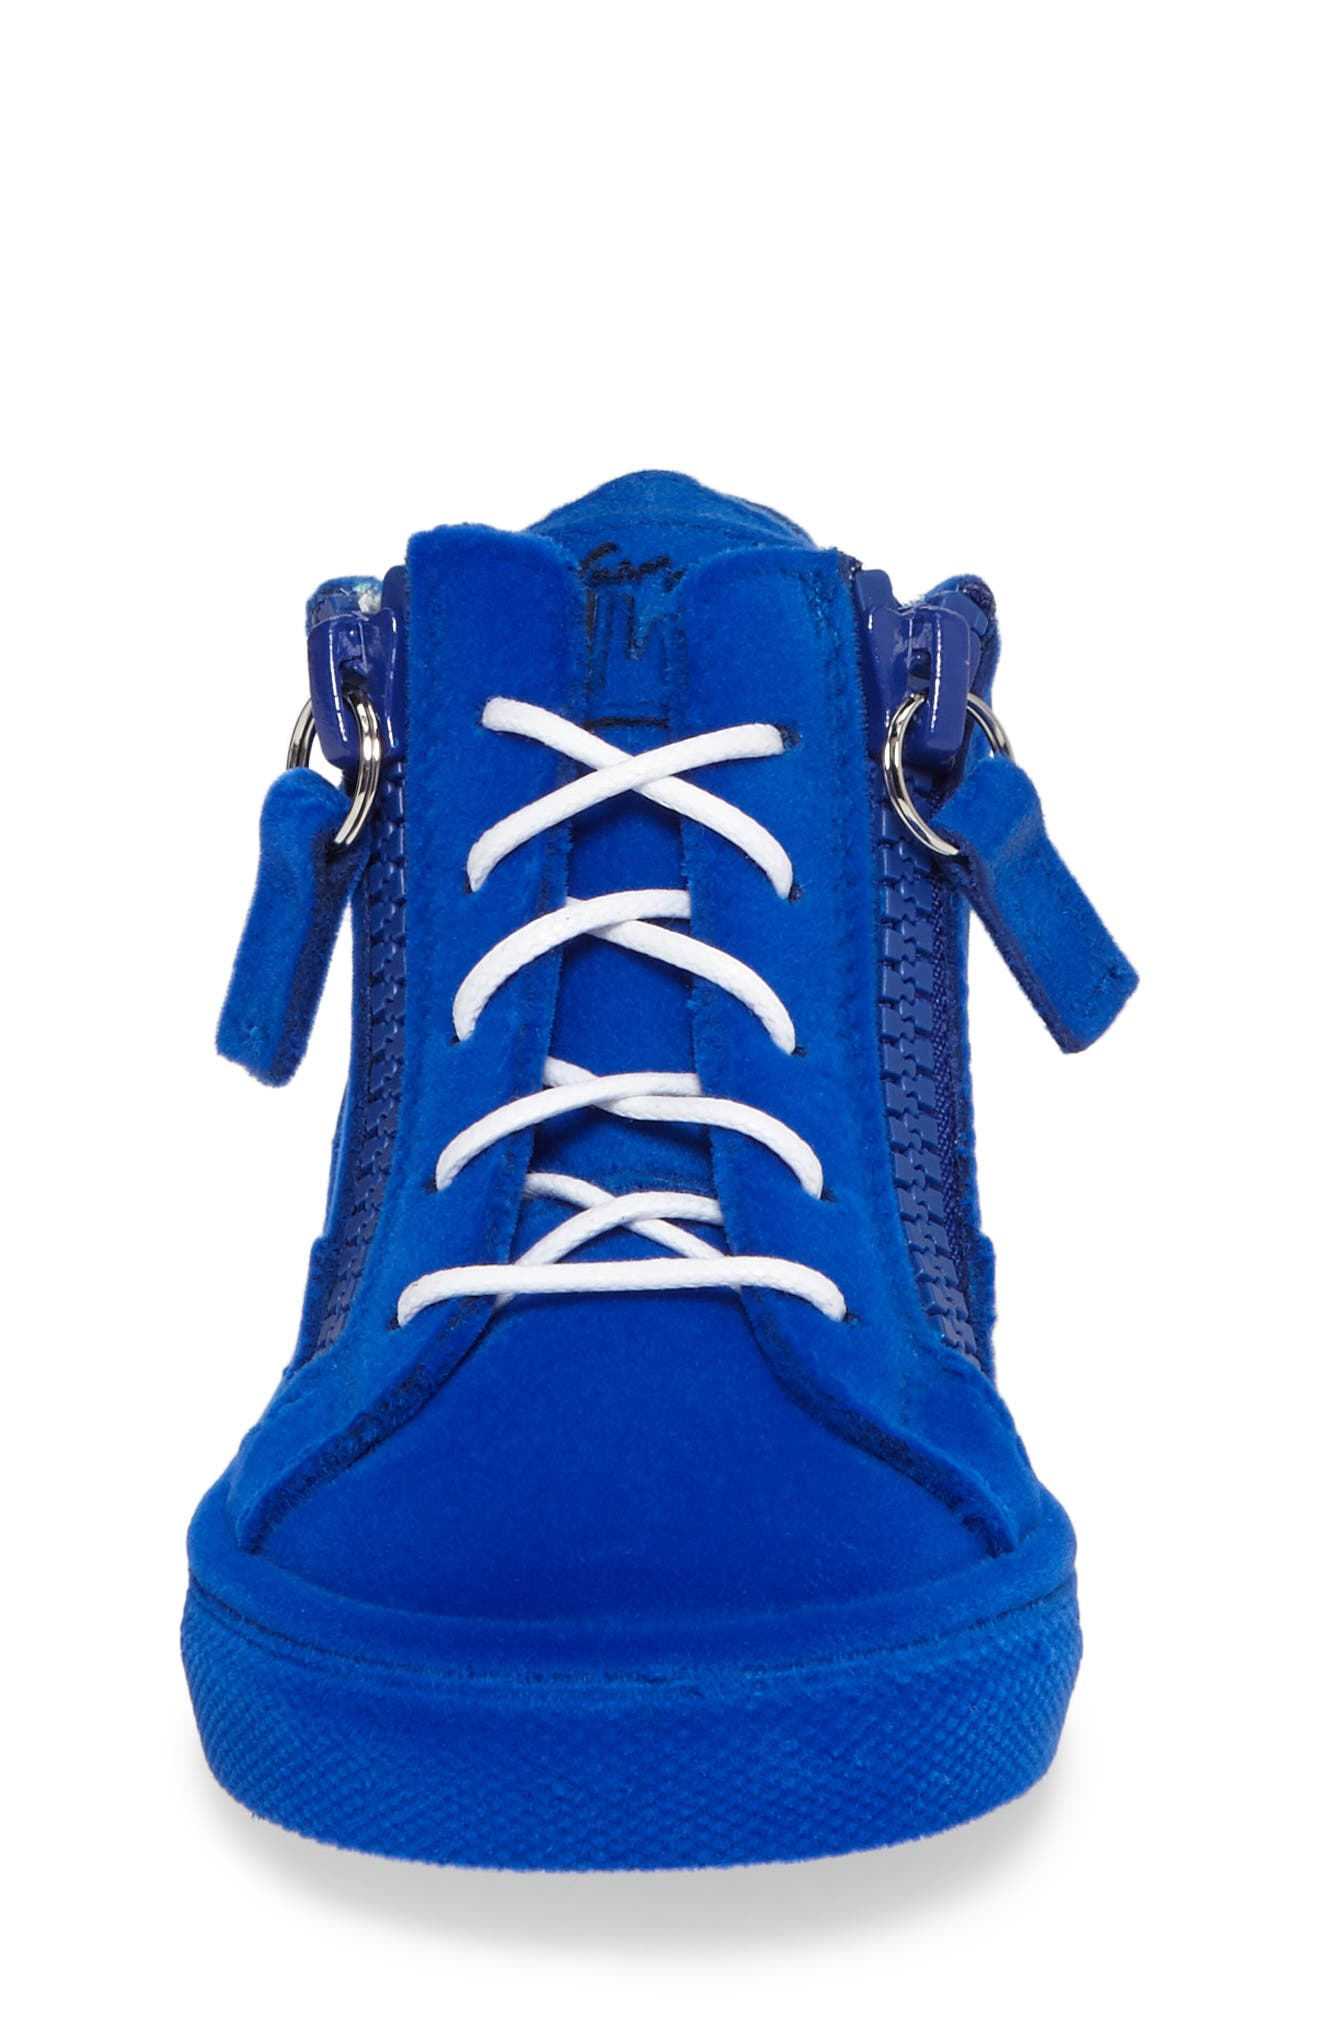 Smuggy Sneaker,                             Alternate thumbnail 4, color,                             BLUE